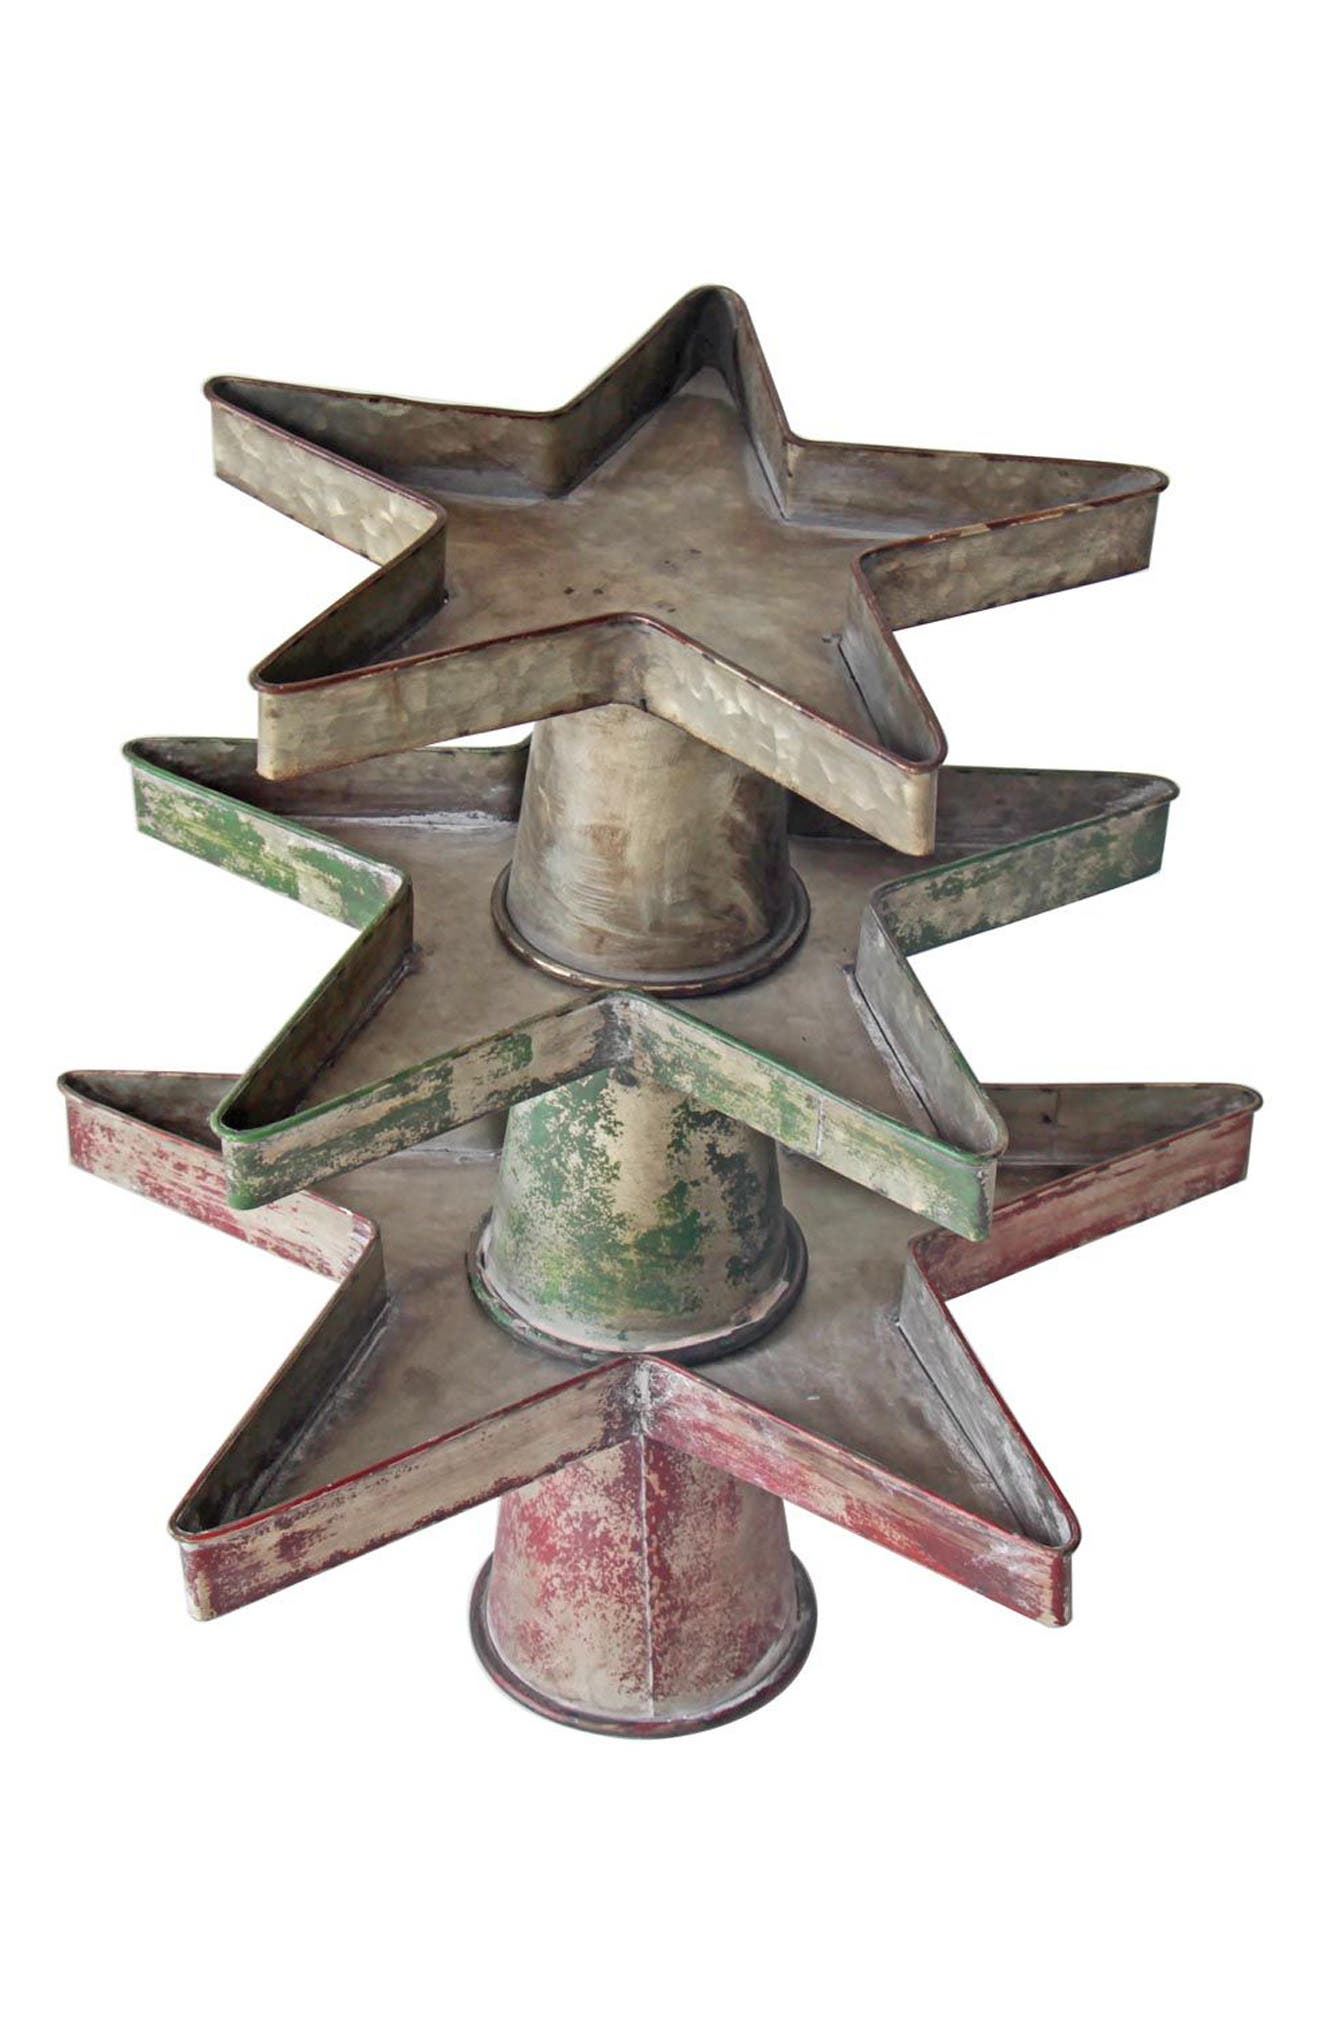 Set of 3 Stackable Galvanized Metal Star Trays,                             Main thumbnail 1, color,                             220